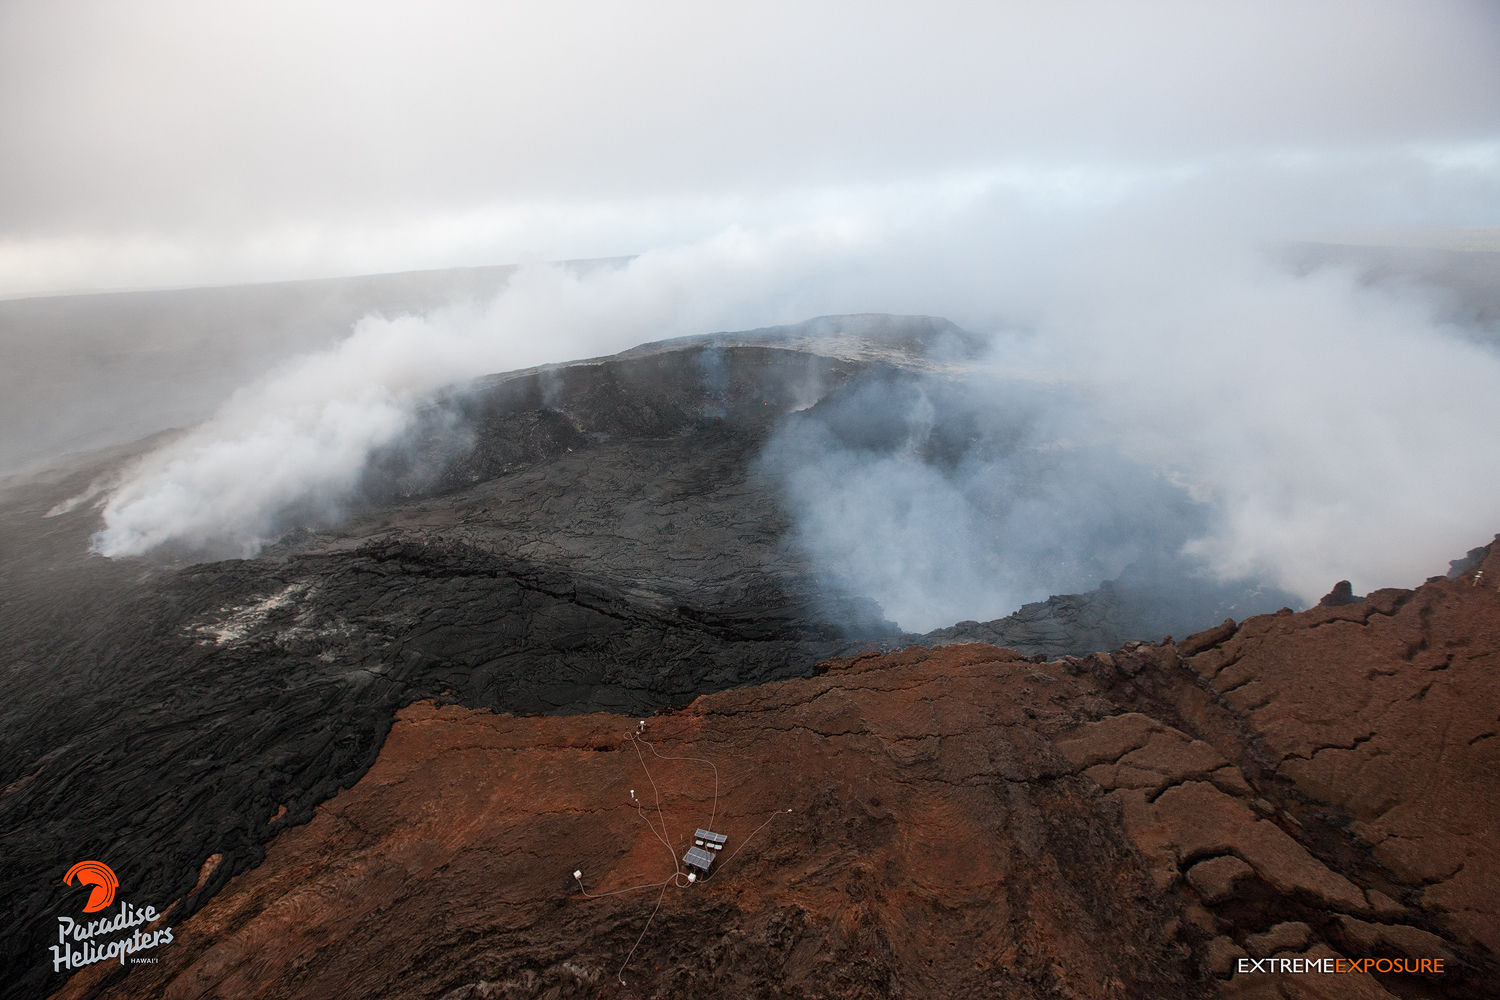 paradise helicopters kona with Photos Kilauea Summit Update 71015 on Four Seasons Resort Maui Unforgettable Experiences besides Kona Volcano By Air Land together with Fletch Photography also Oahu Helicopter Tours Hawaii besides June 27 Lava Flow Update 31715.